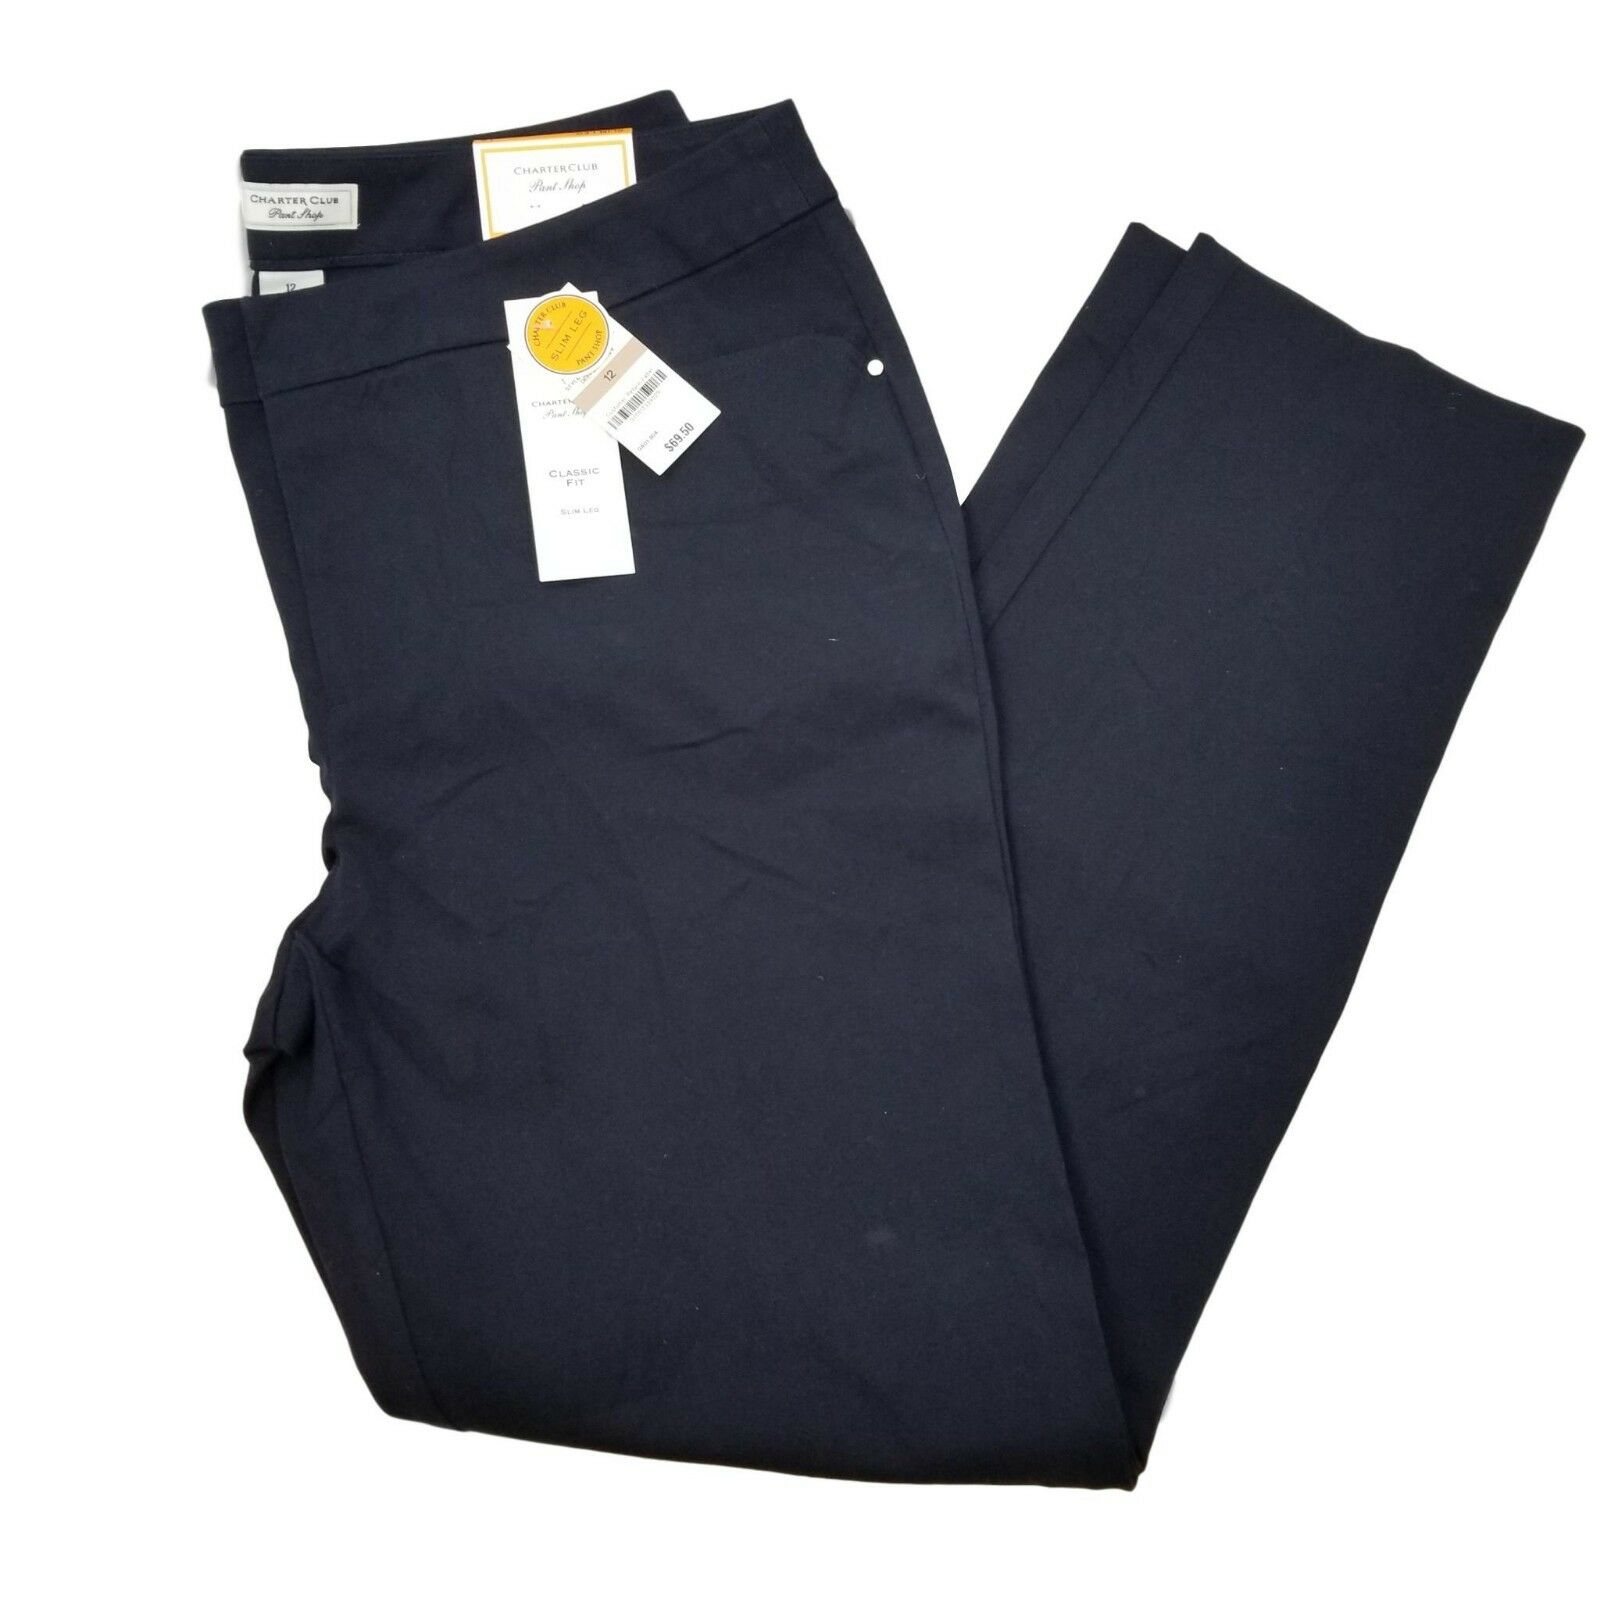 Charter Club Womens Pants Navy bluee Classic Fit Work Career Curvy Fit Size 12 NW